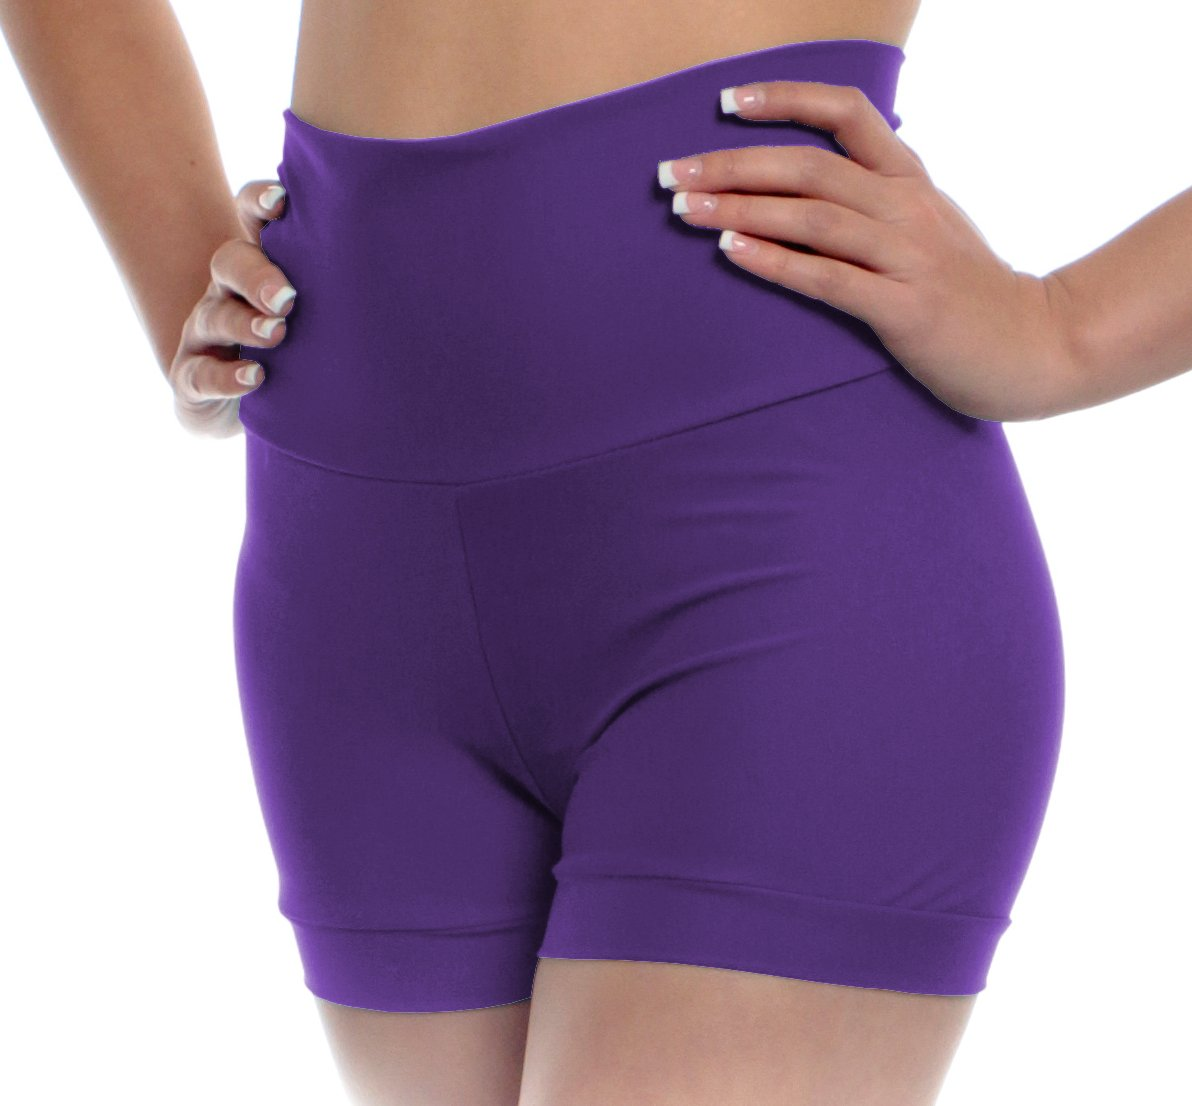 Girls High Waisted Dance Shorts Small Purple Child and Kid Sizes With Fold Over Band and Stretch By B Dancewear by B Dancewear